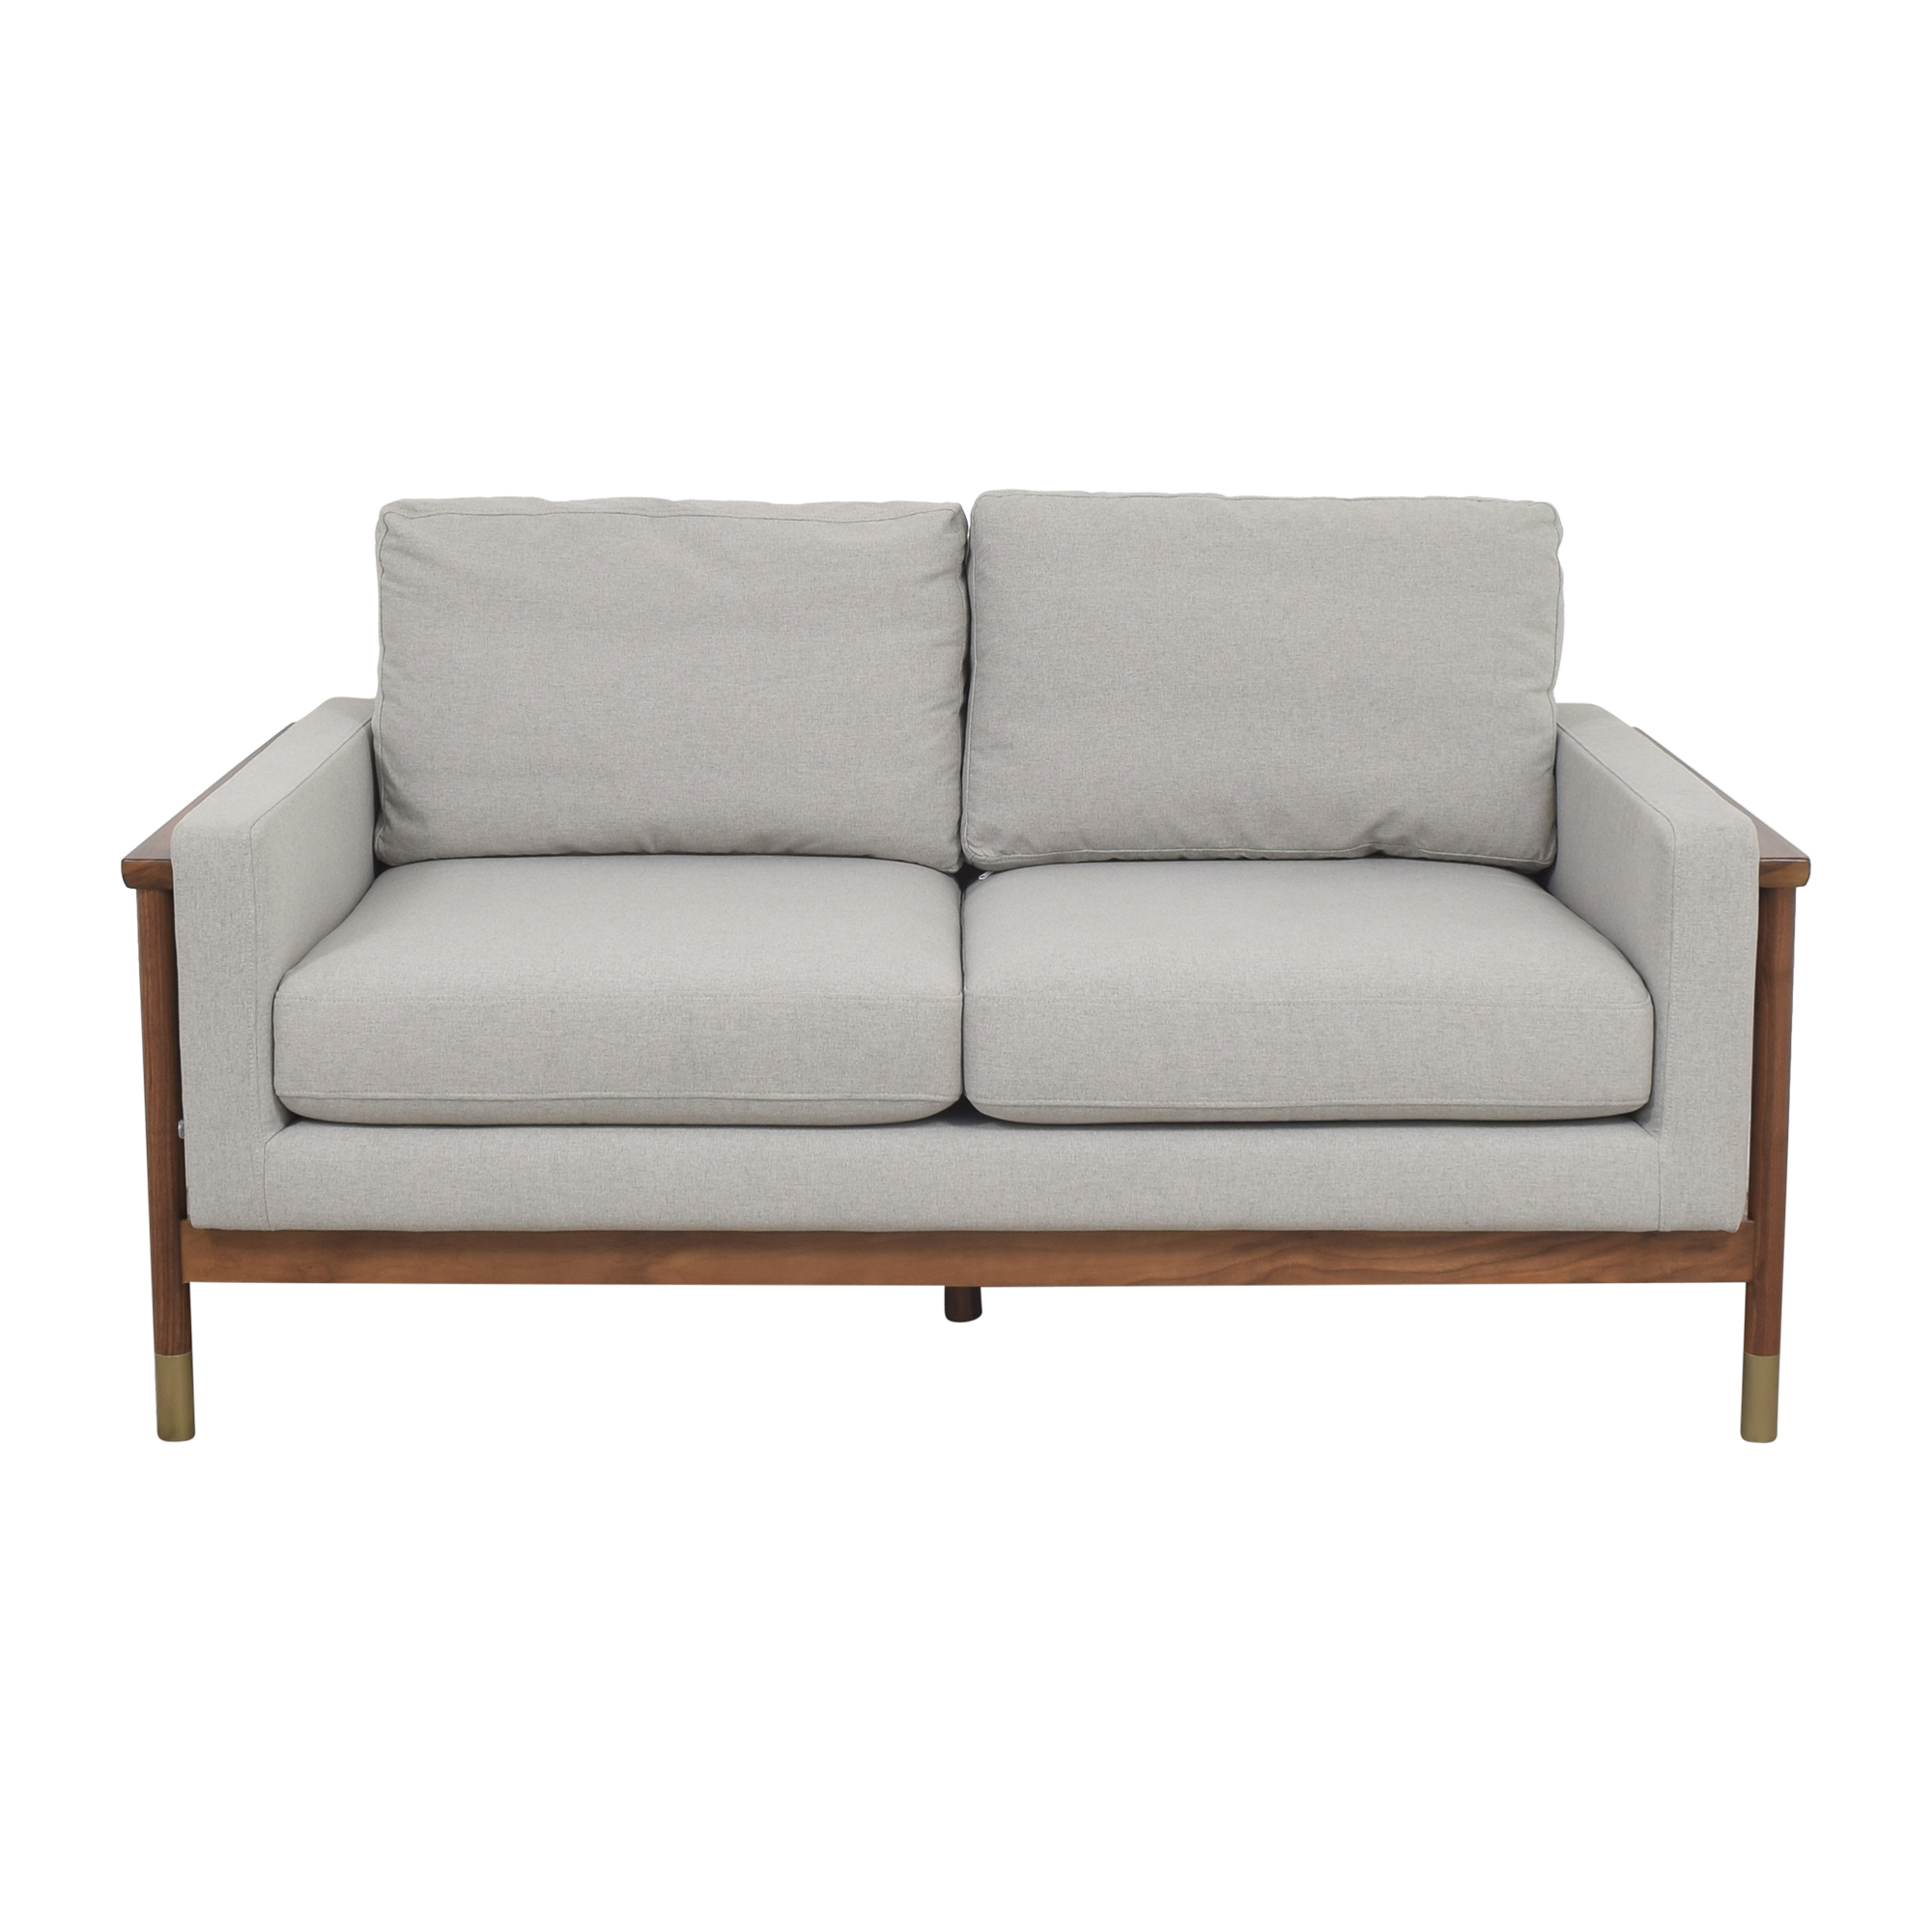 Interior Define Interior Define Jason Wu Loveseat Sofa pa